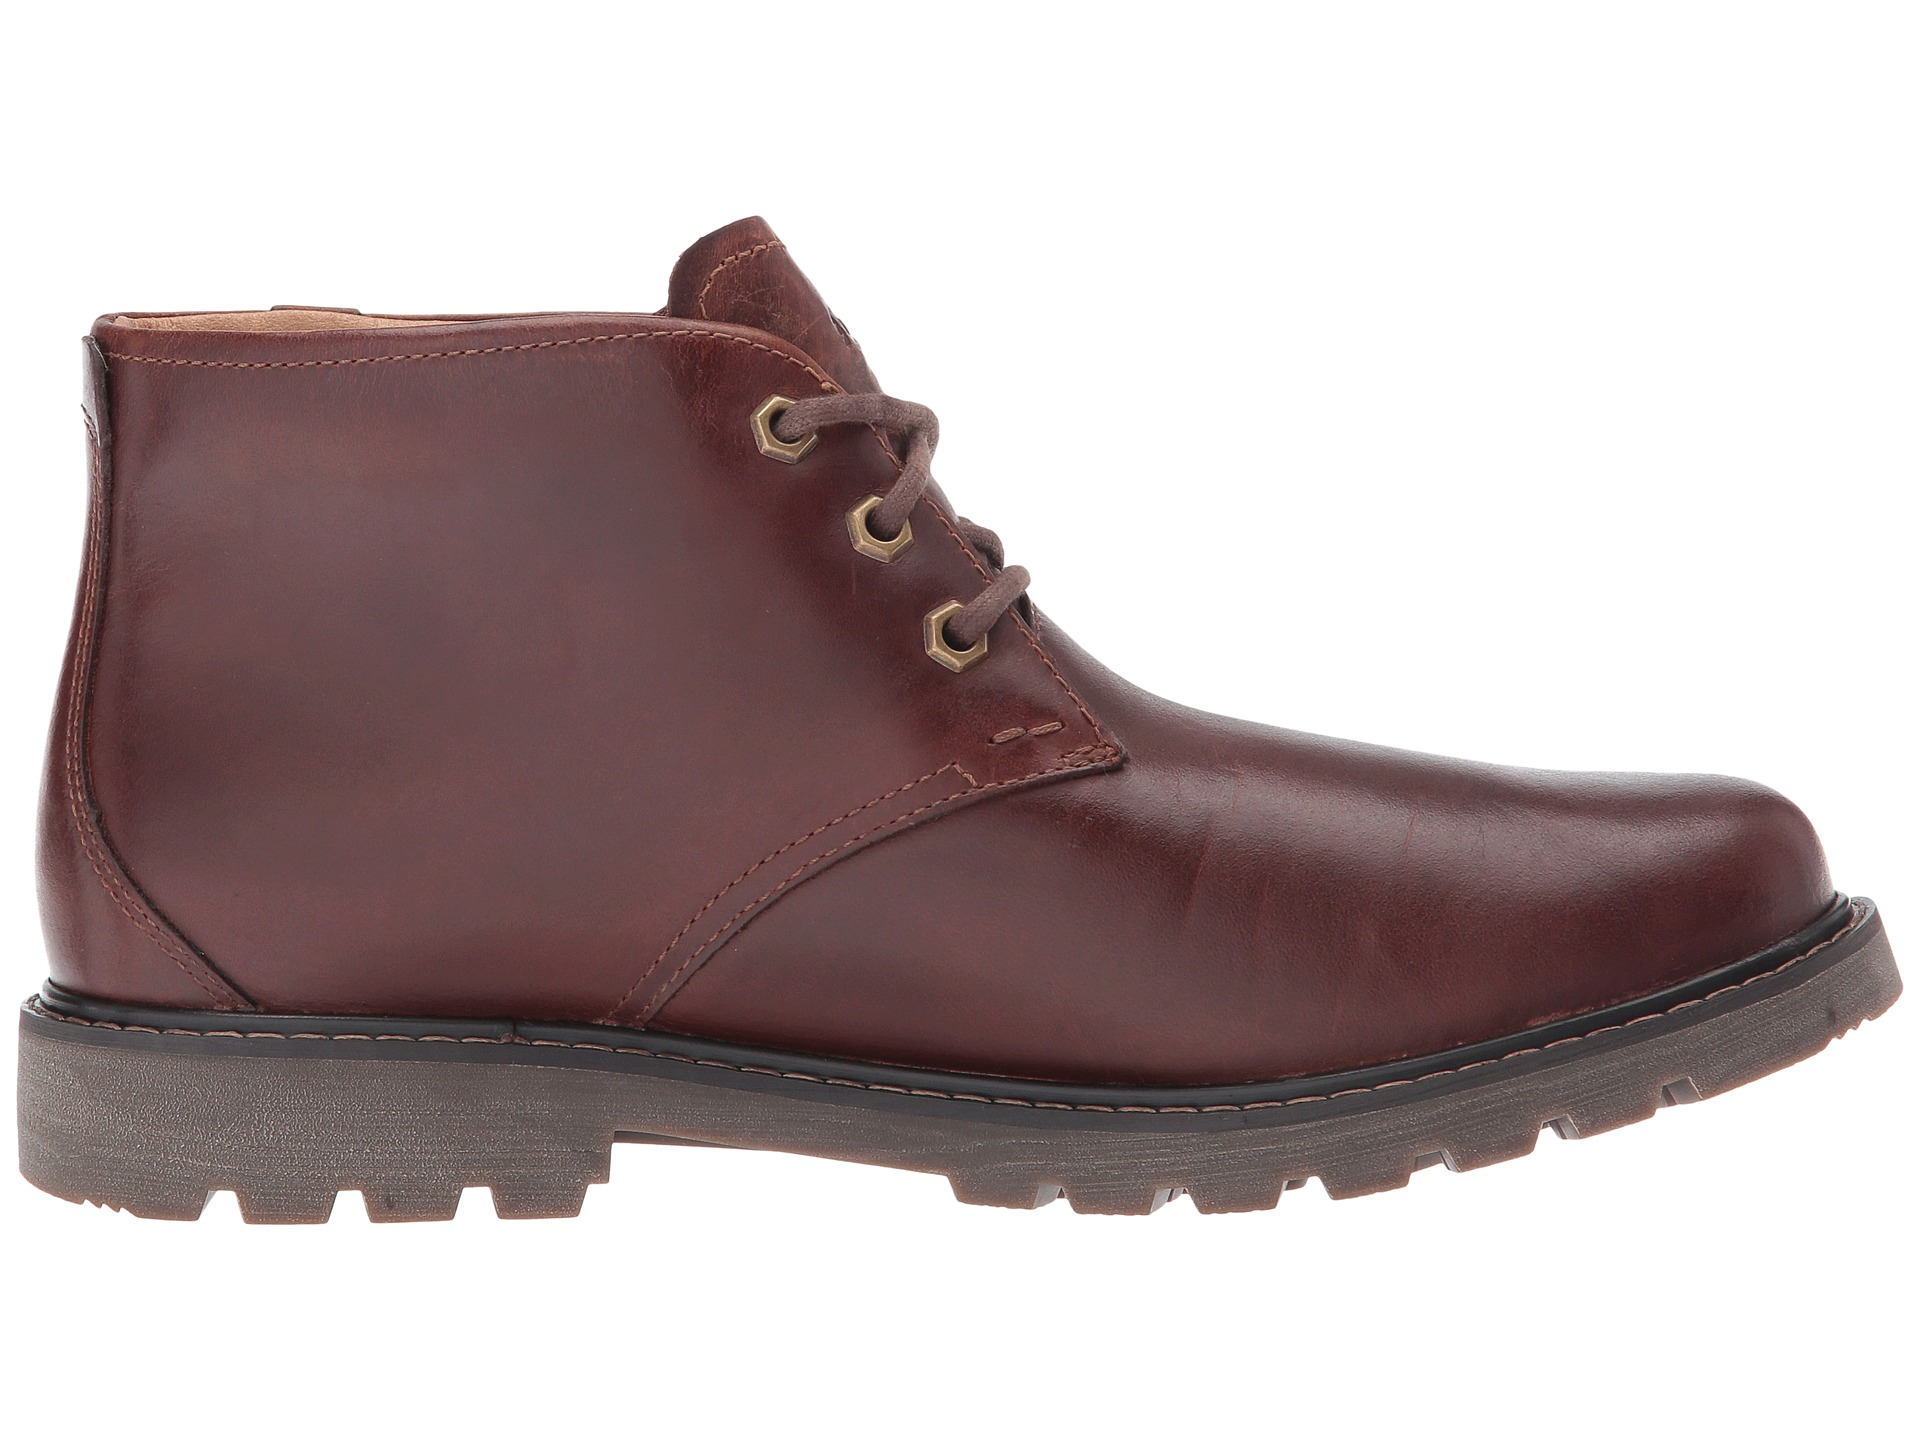 royalton women » review price dunham royalton plain toe boot (men) by mens wide shoes, shop the women's athletic clothing sale at athleta for a wide variety of fitness and fashion centered pieces.